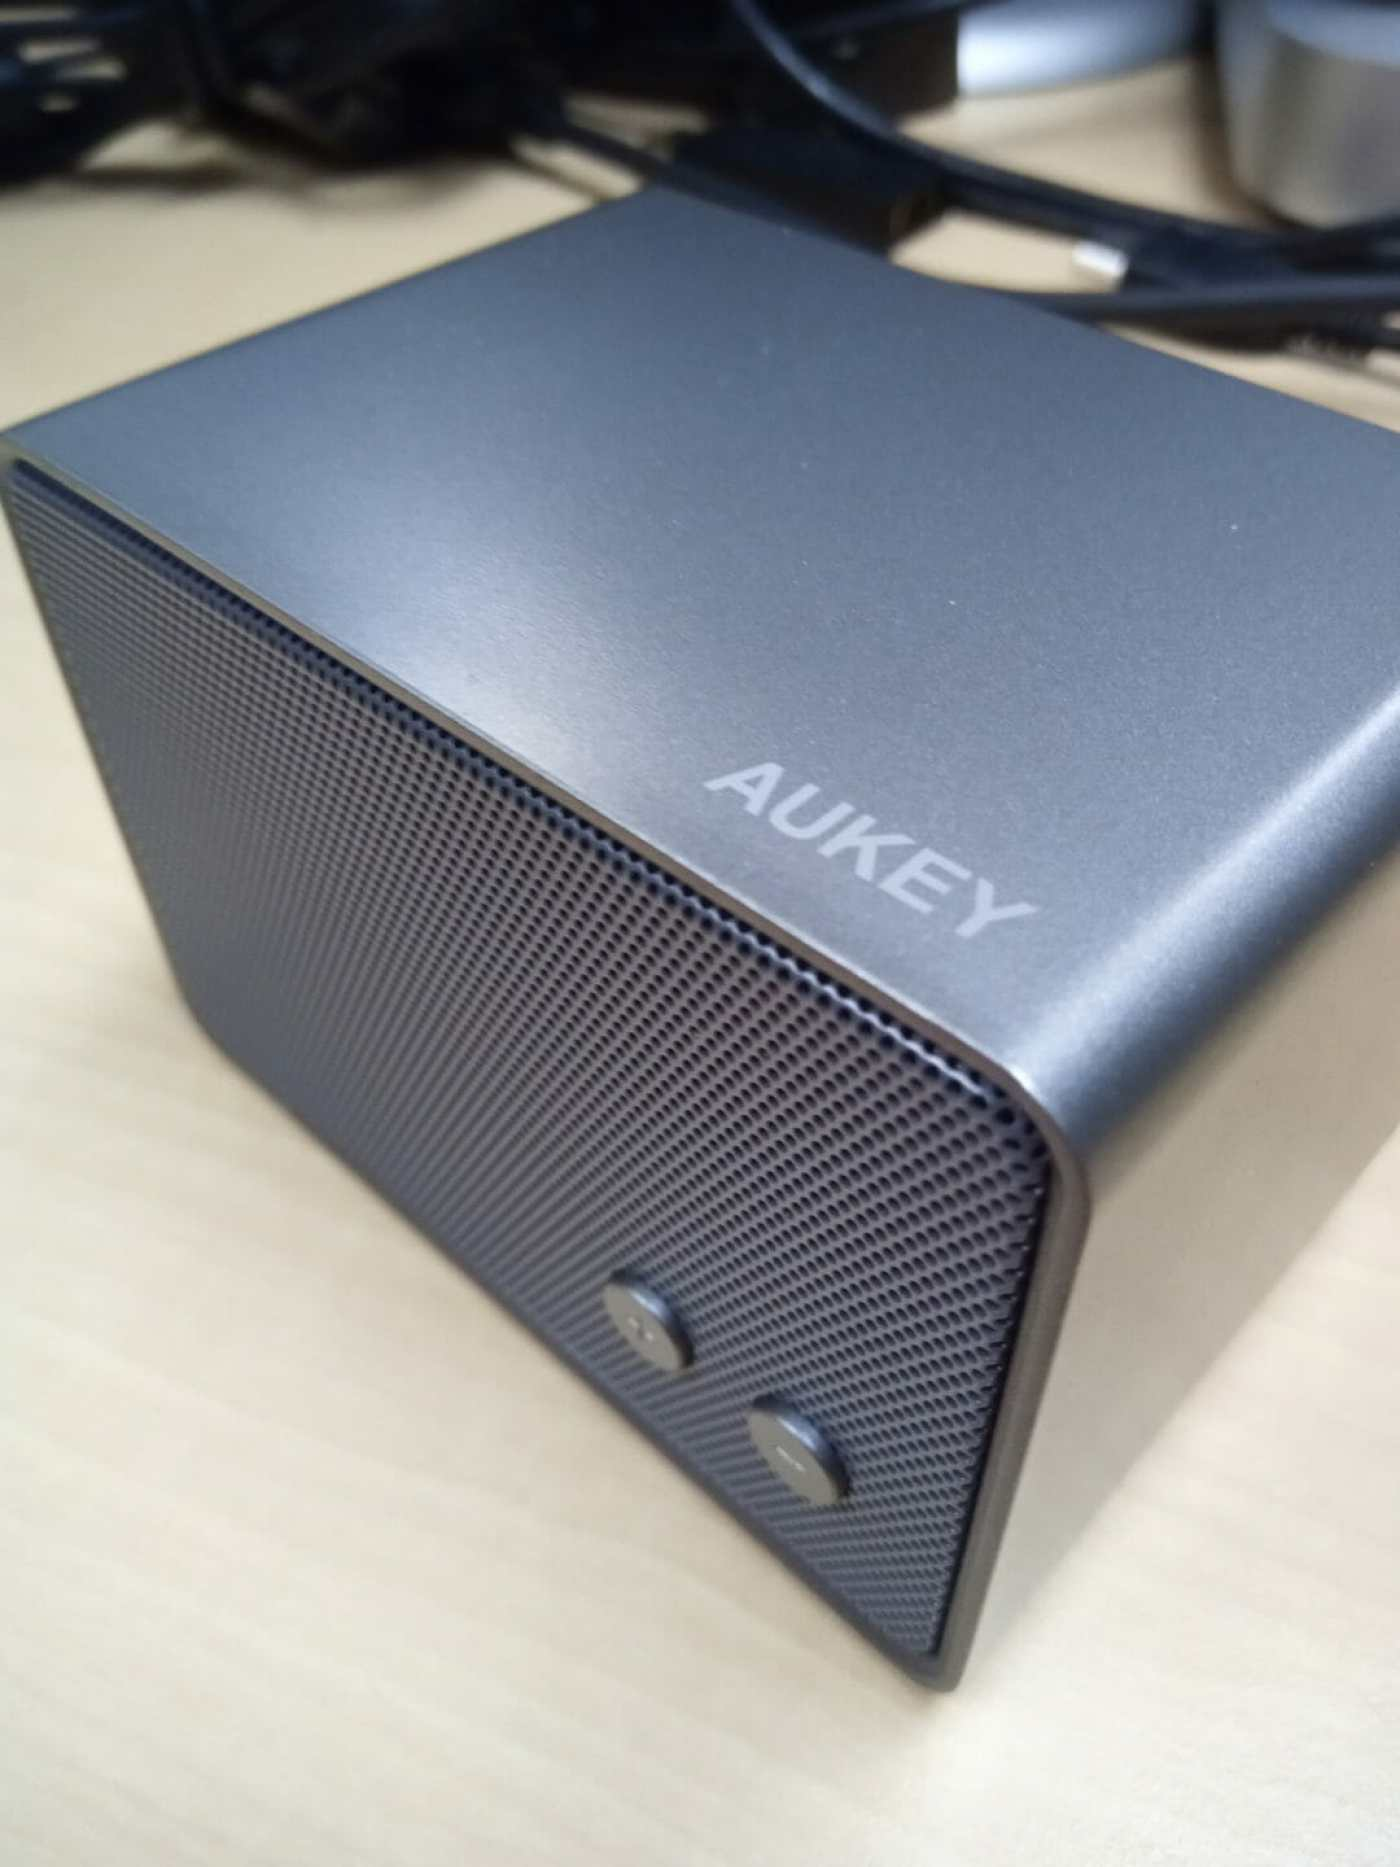 AUKEY Bluetooth Speaker offers decent sound in a compact size